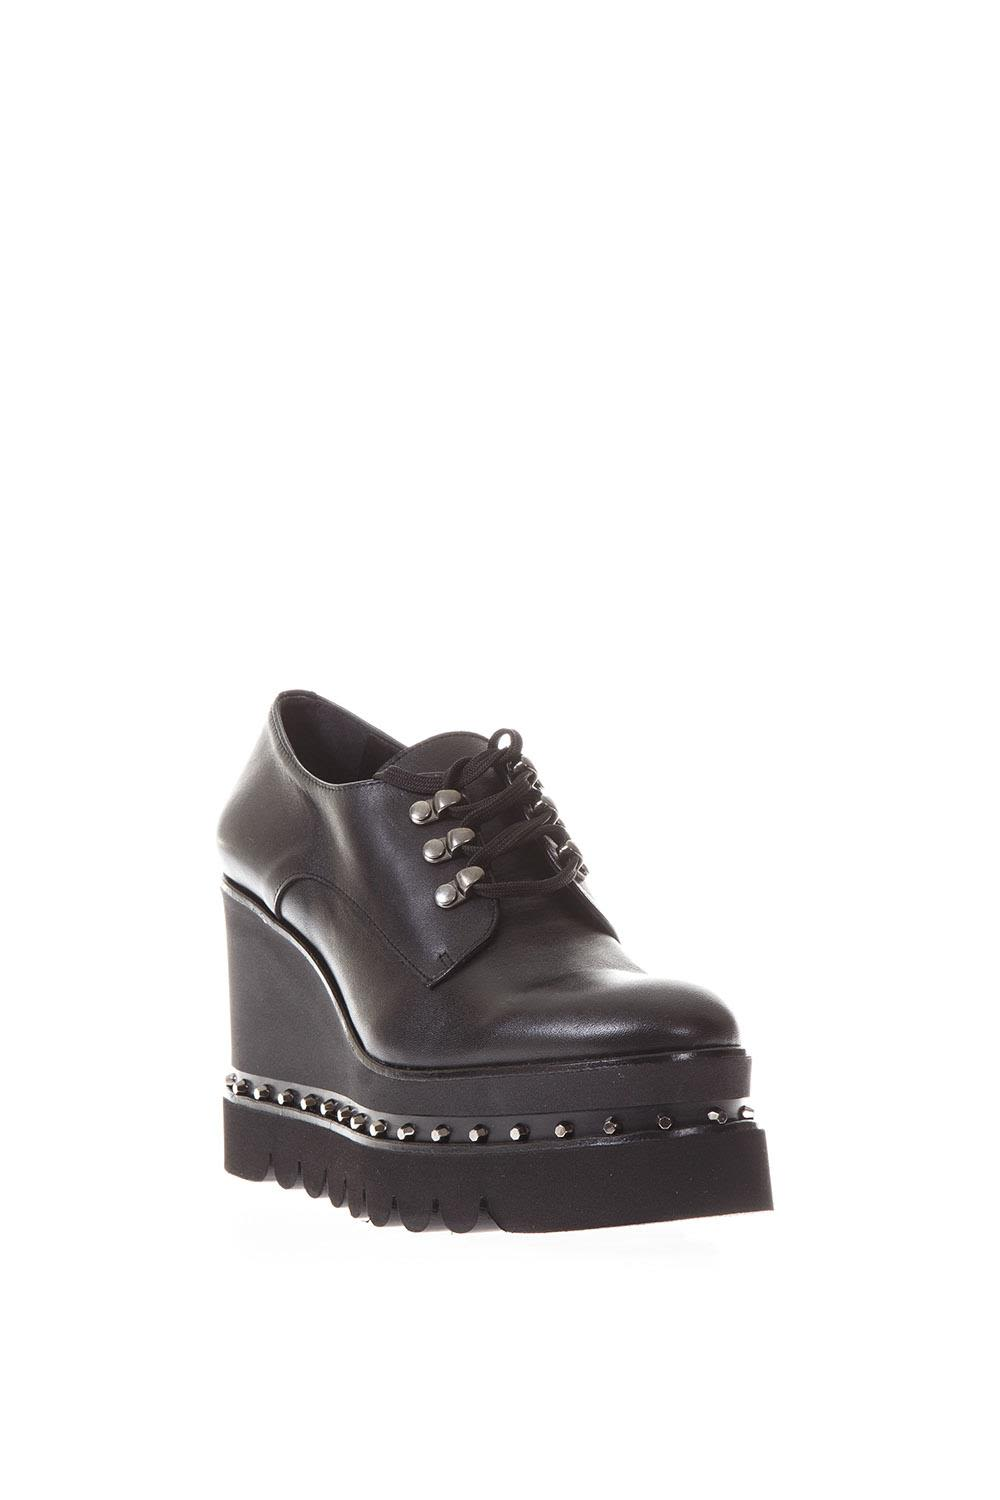 ... Ras Nappa High Wedge Lace Up Mocassin ...